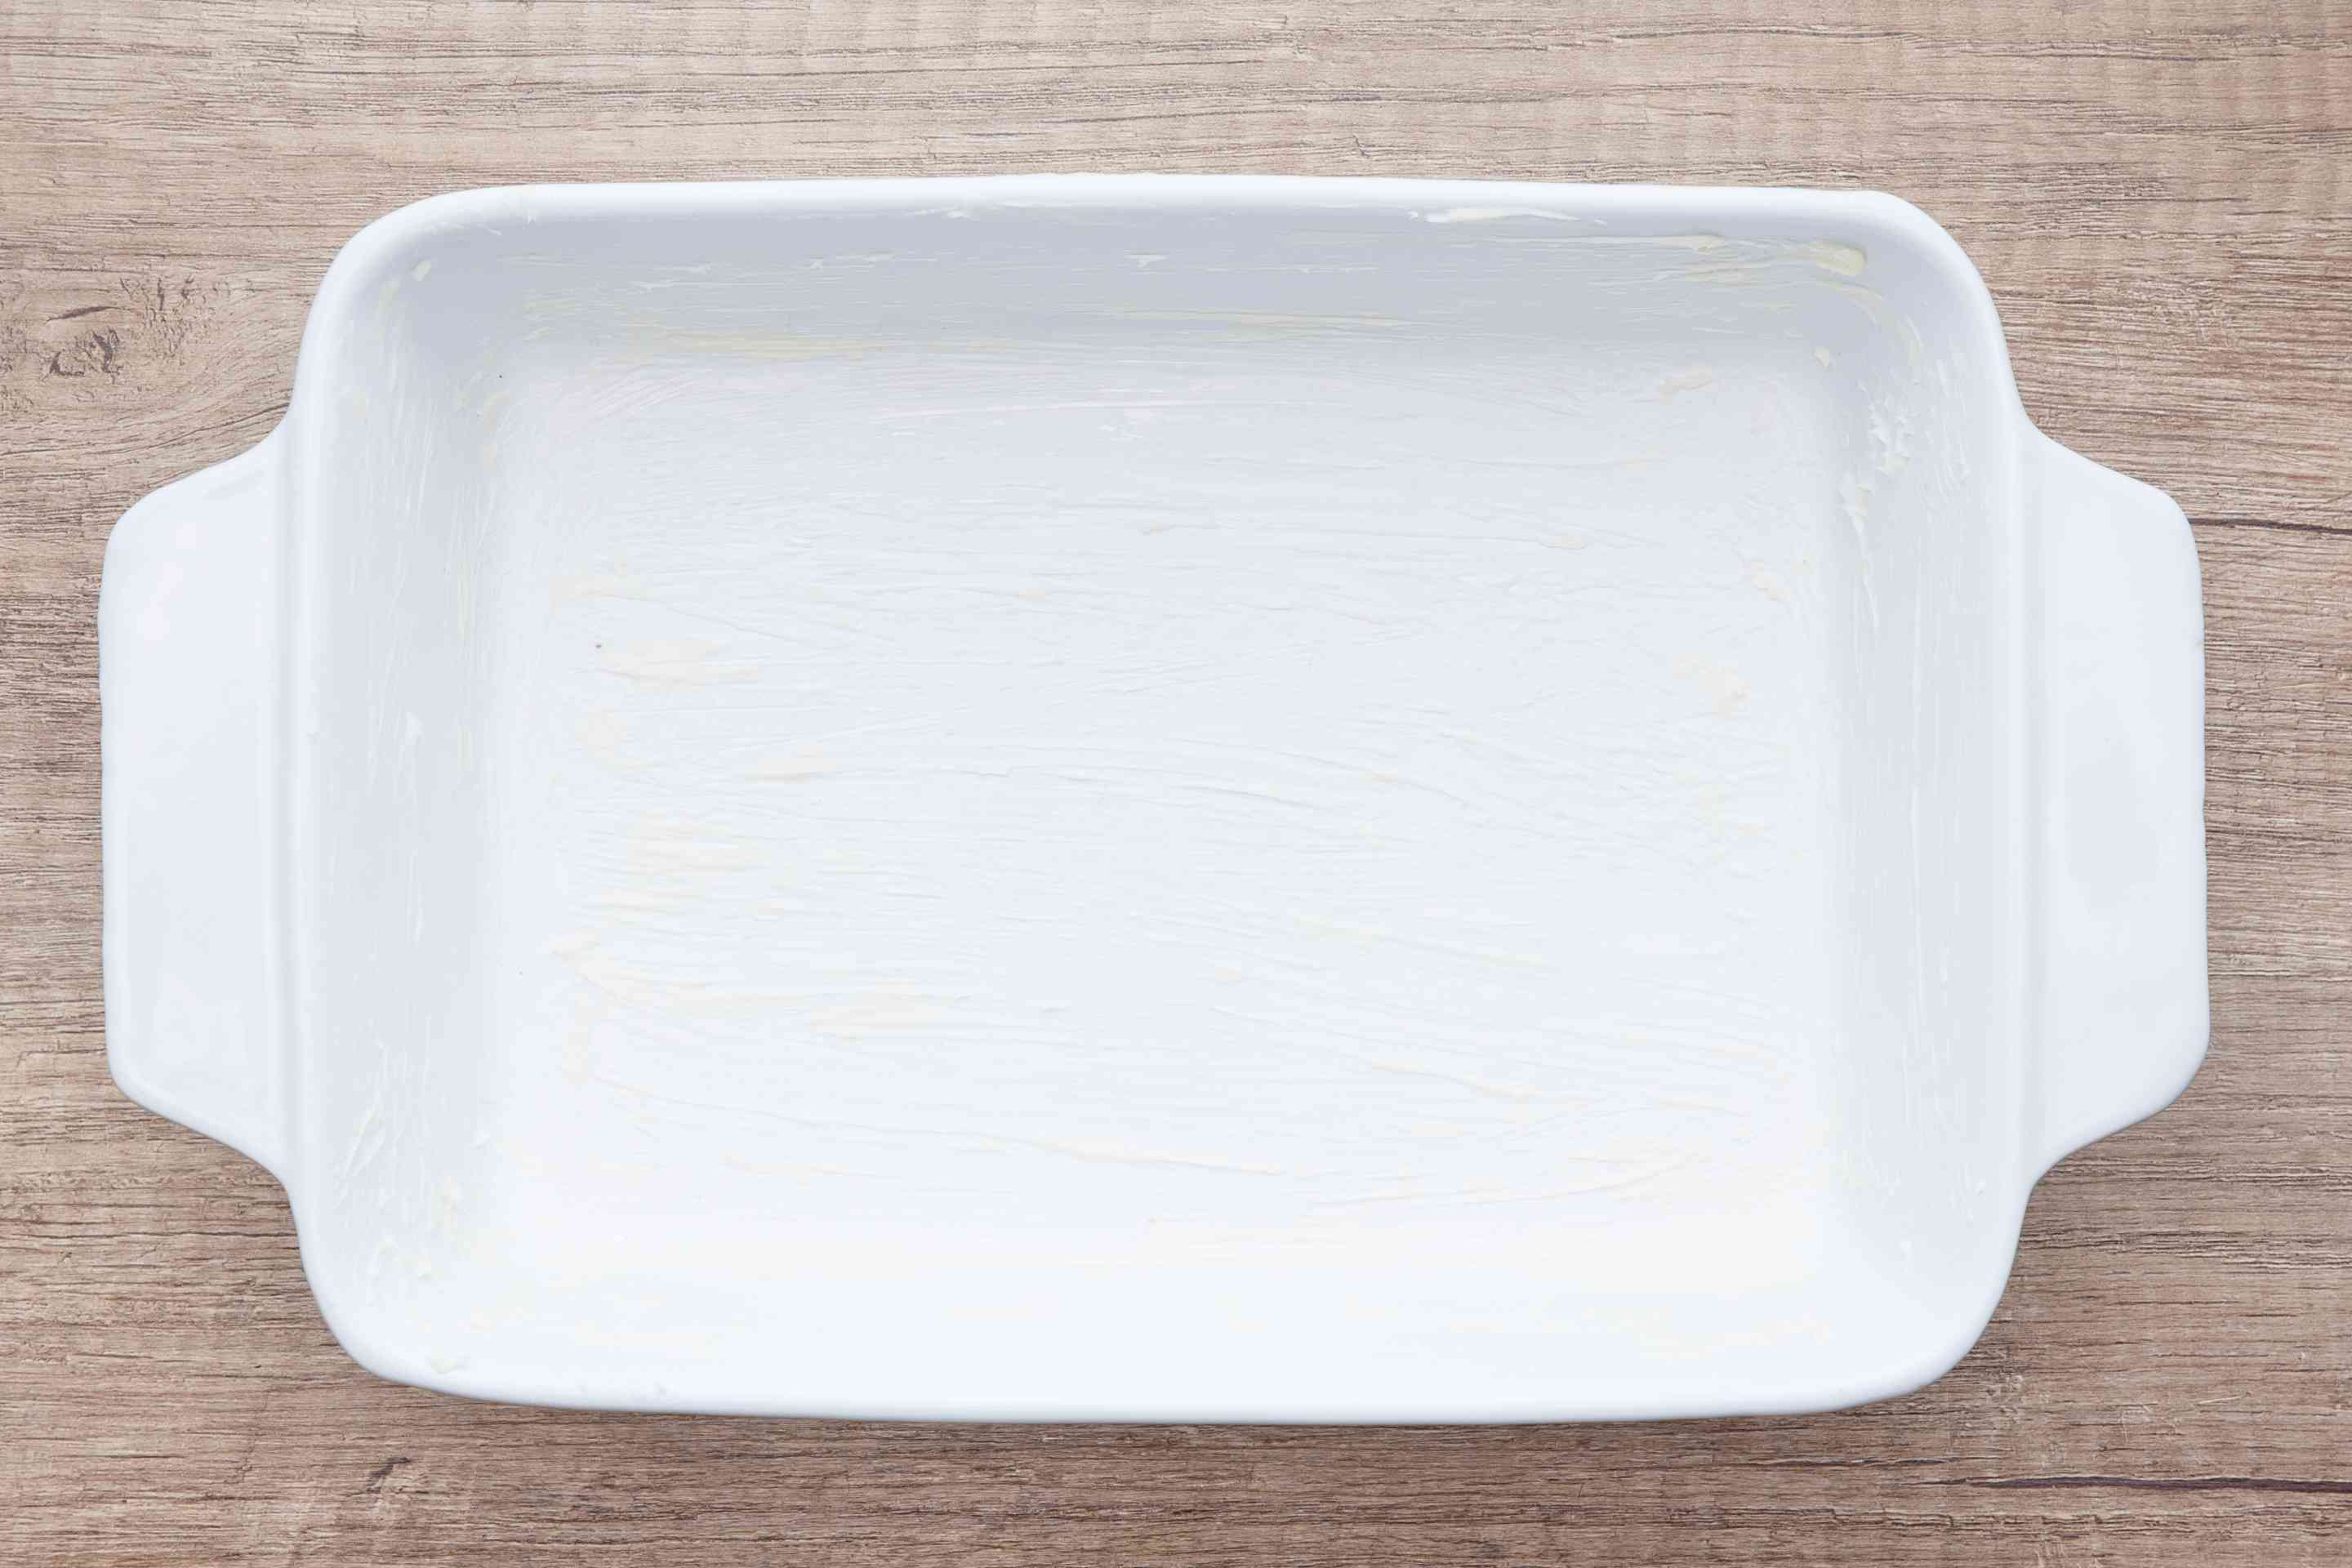 Lightly butter baking dish